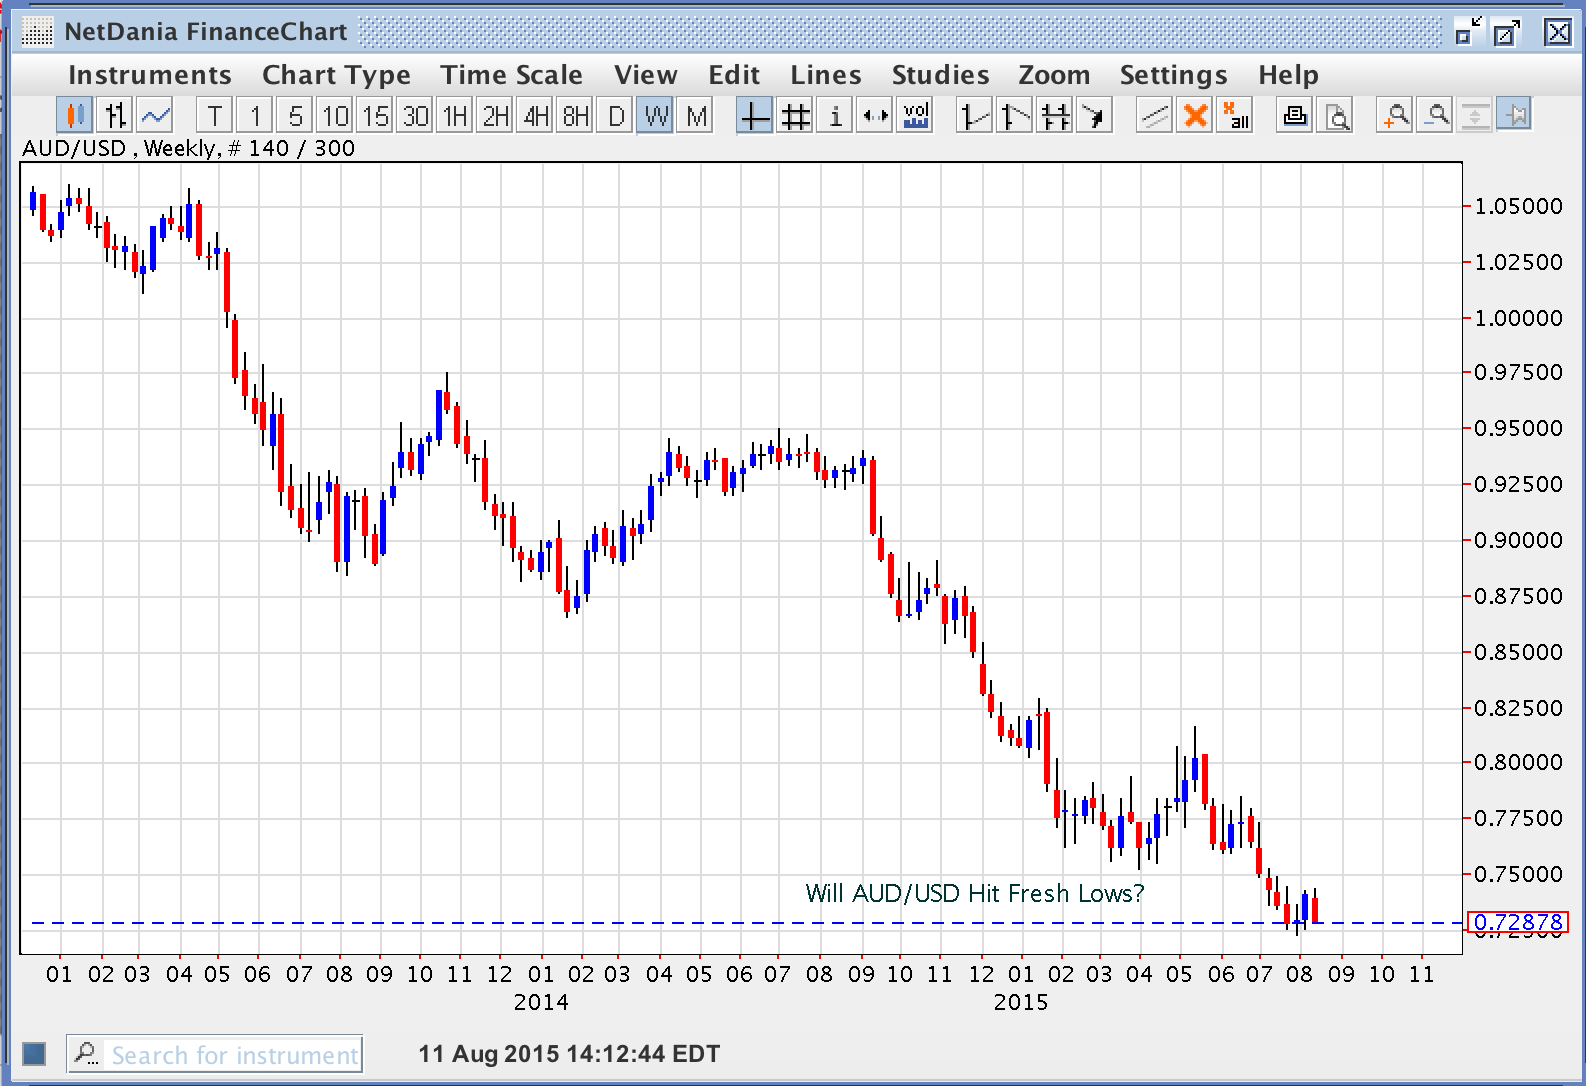 Will AUD/USD Hit Fresh Lows?